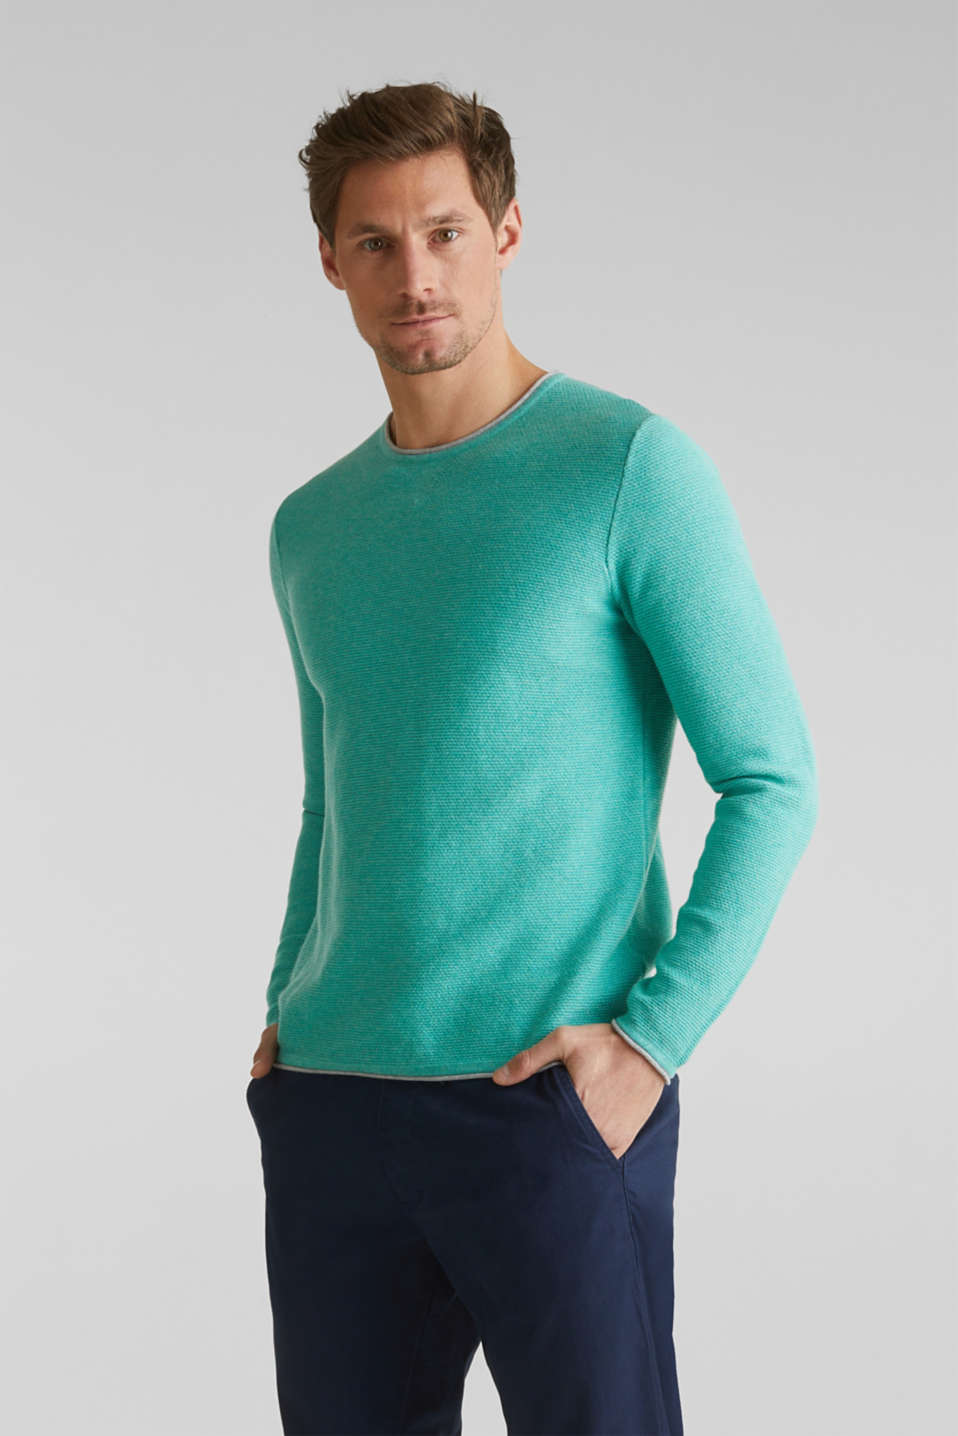 Textured jumper made of 100% cotton, LIGHT AQUA GREEN 5, detail image number 0